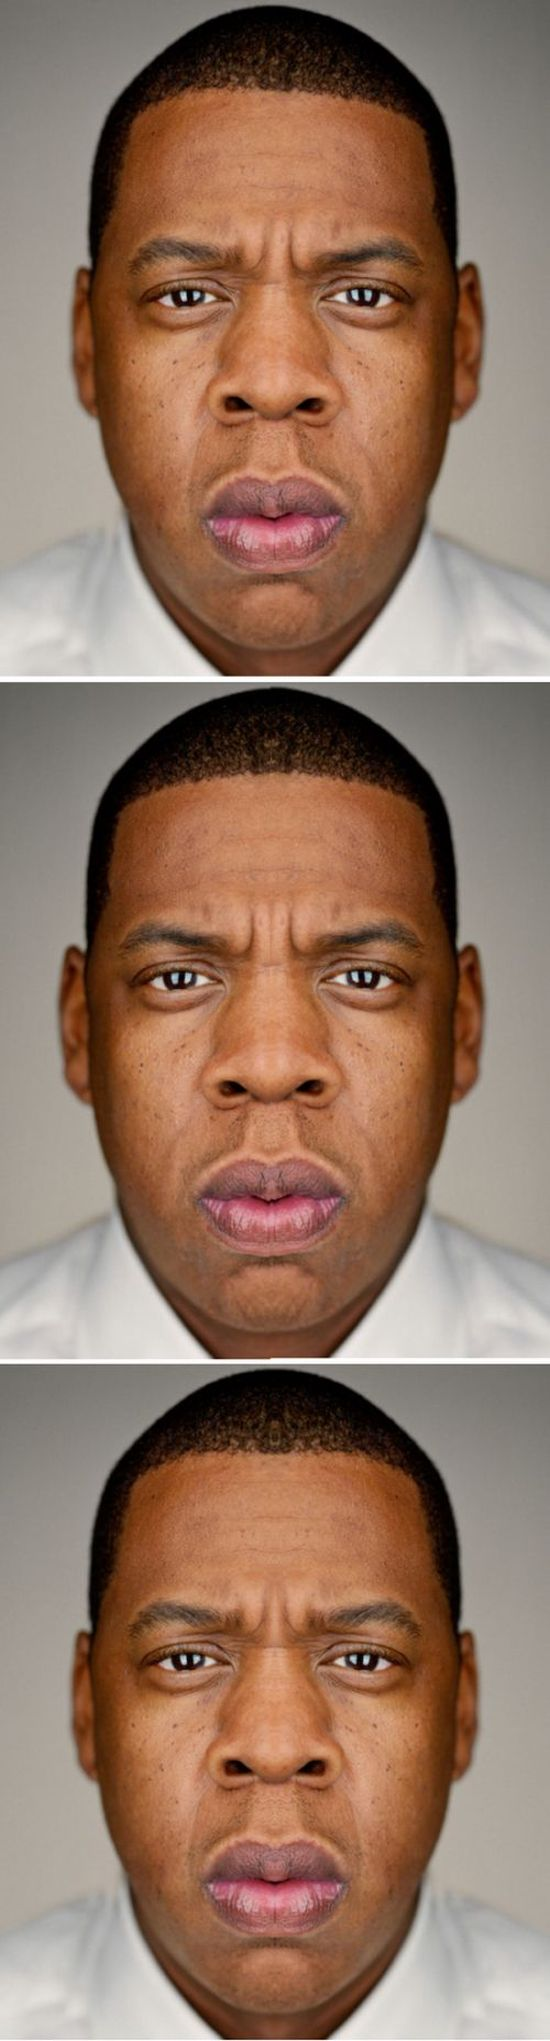 Symmetrical Faces Of Celebrities Are Quite Creepy (10 pics)